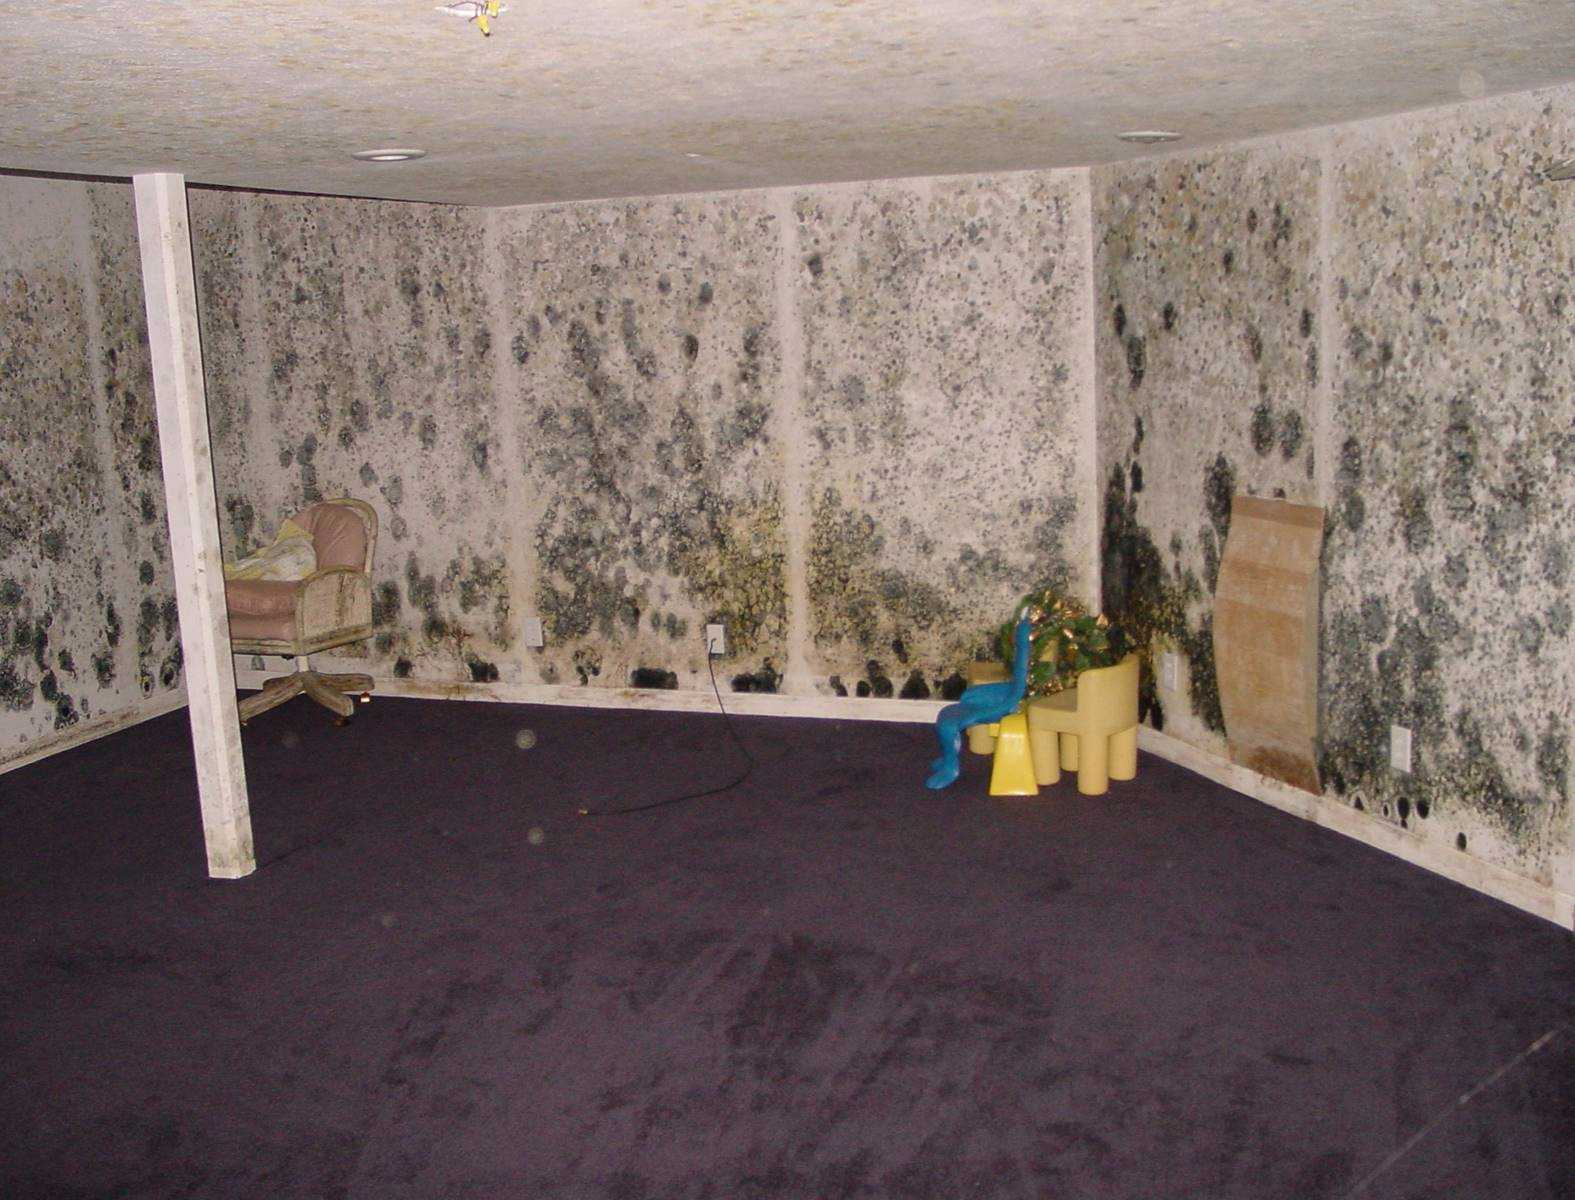 Indoor Air Quality Testing - Mold Walls